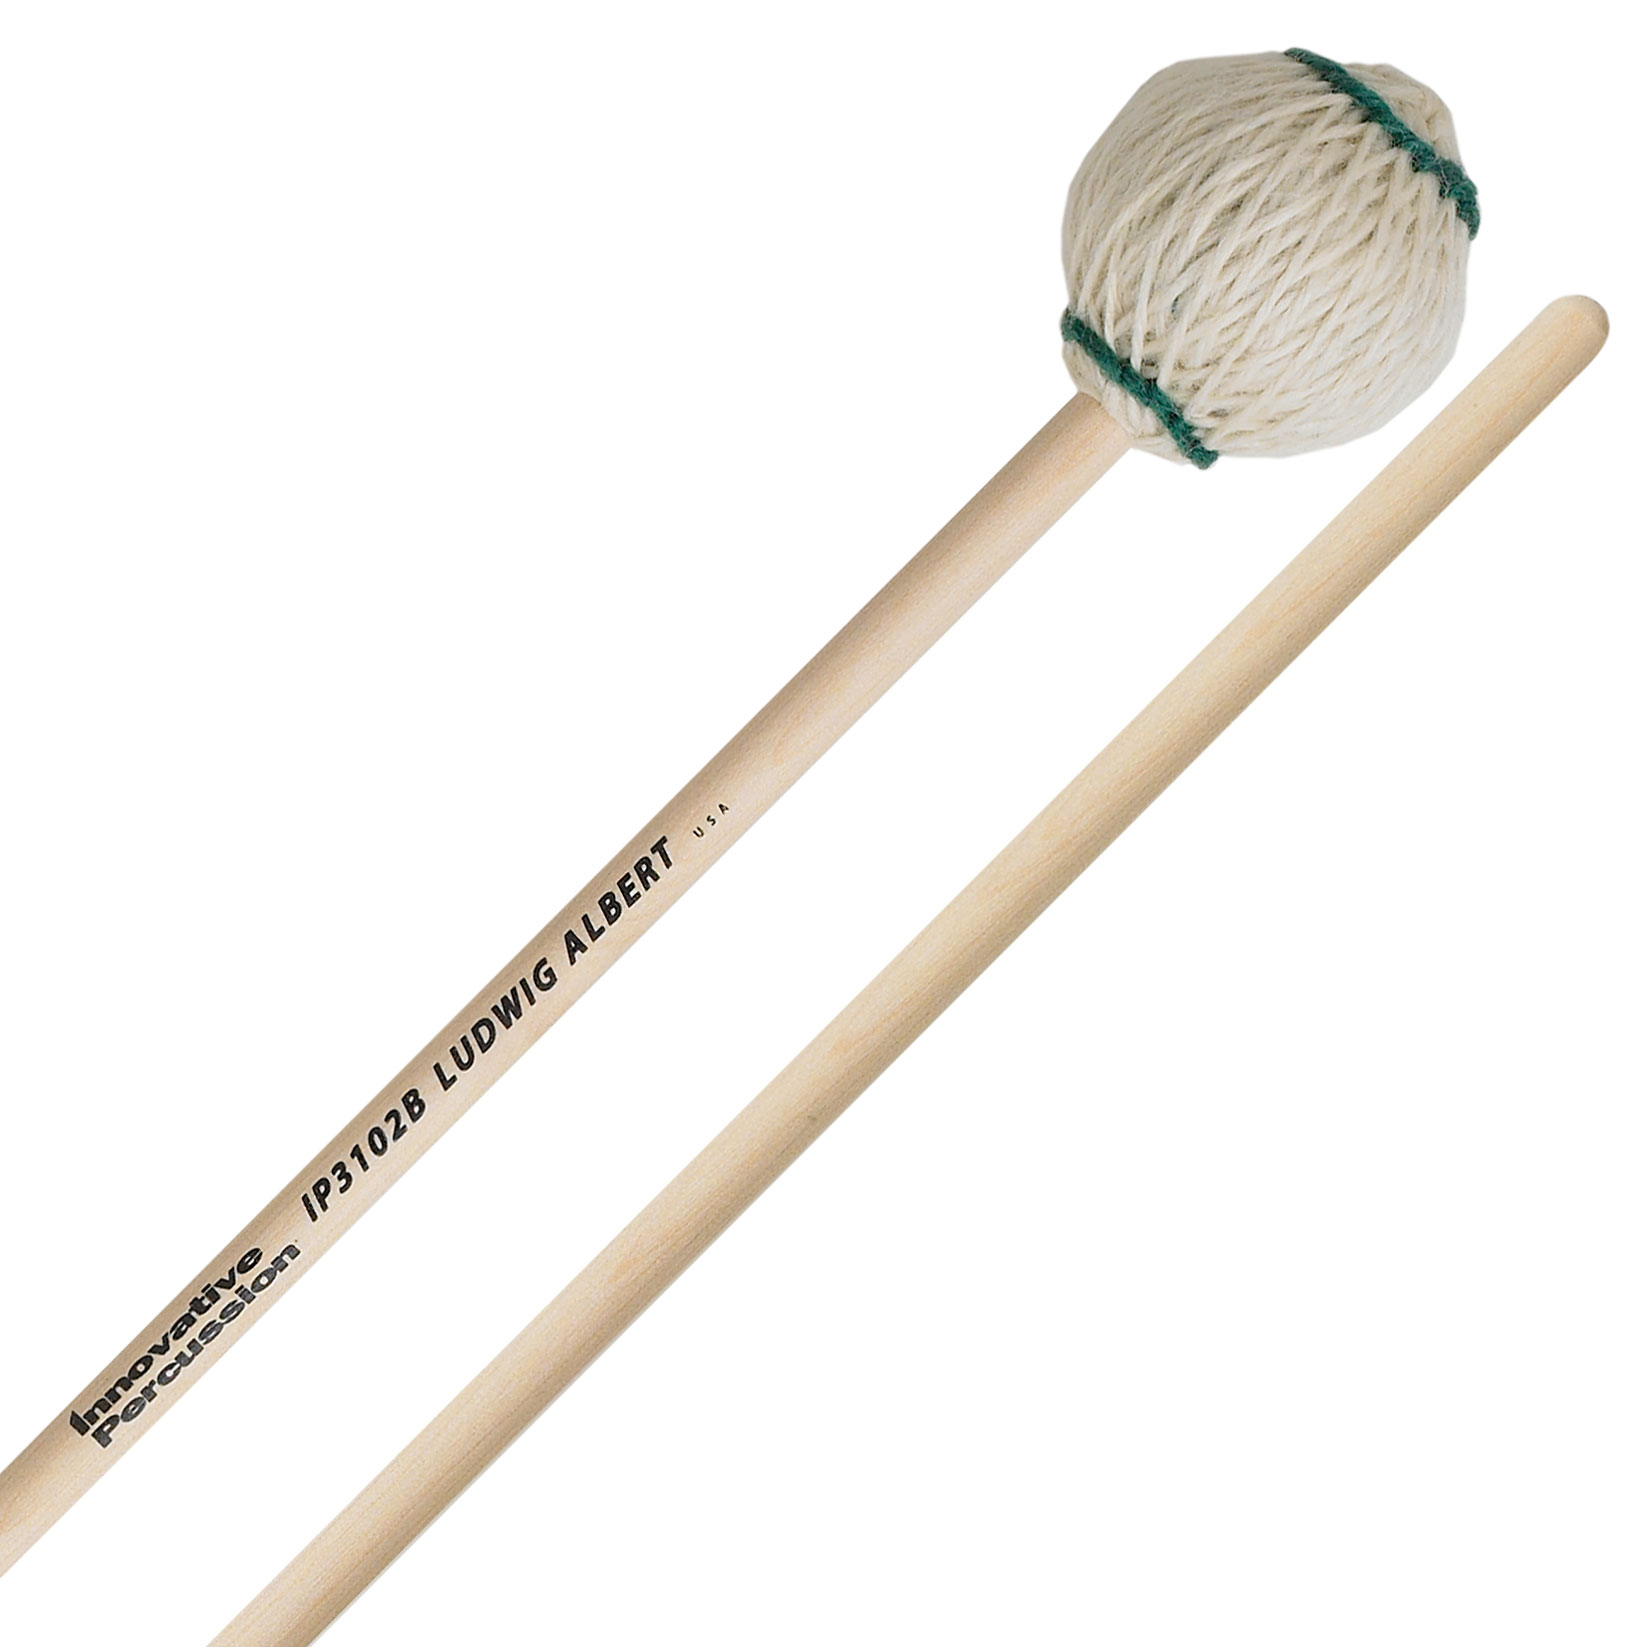 Innovative Percussion Ludwig Albert Medium Signature Very Soft Marimba Mallets with Birch Shafts